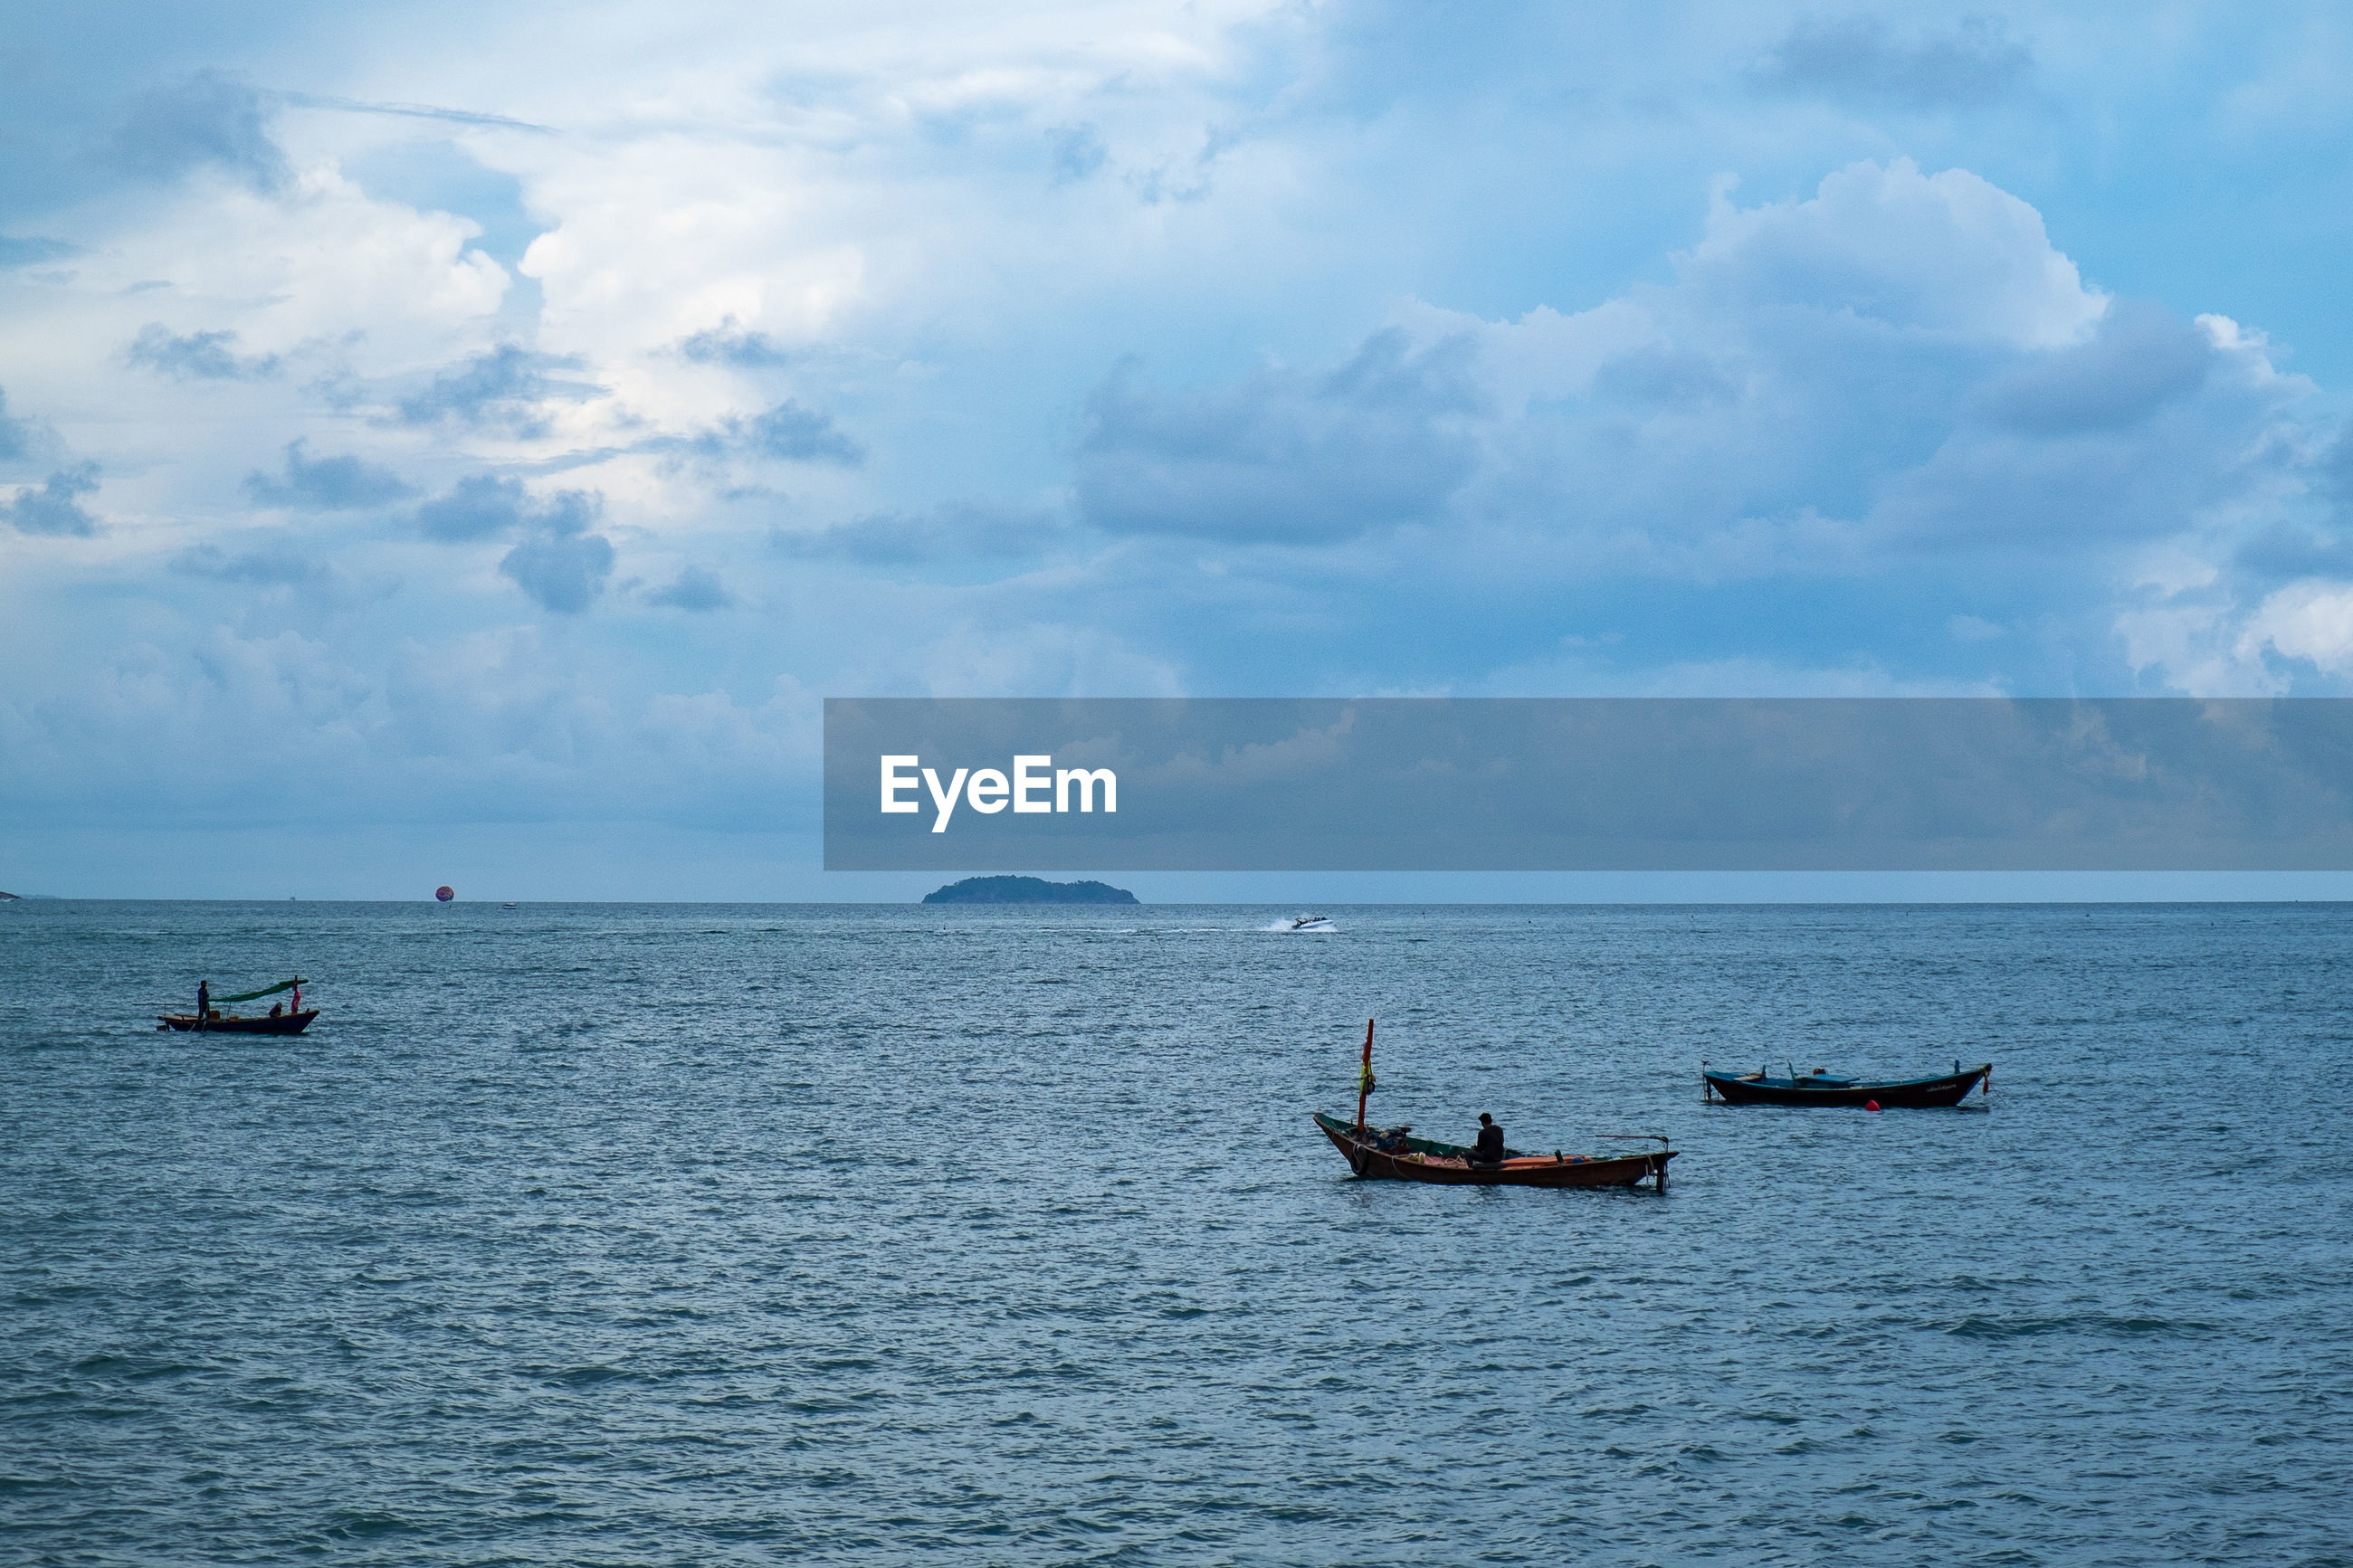 VIEW OF FISHING BOATS IN SEA AGAINST SKY